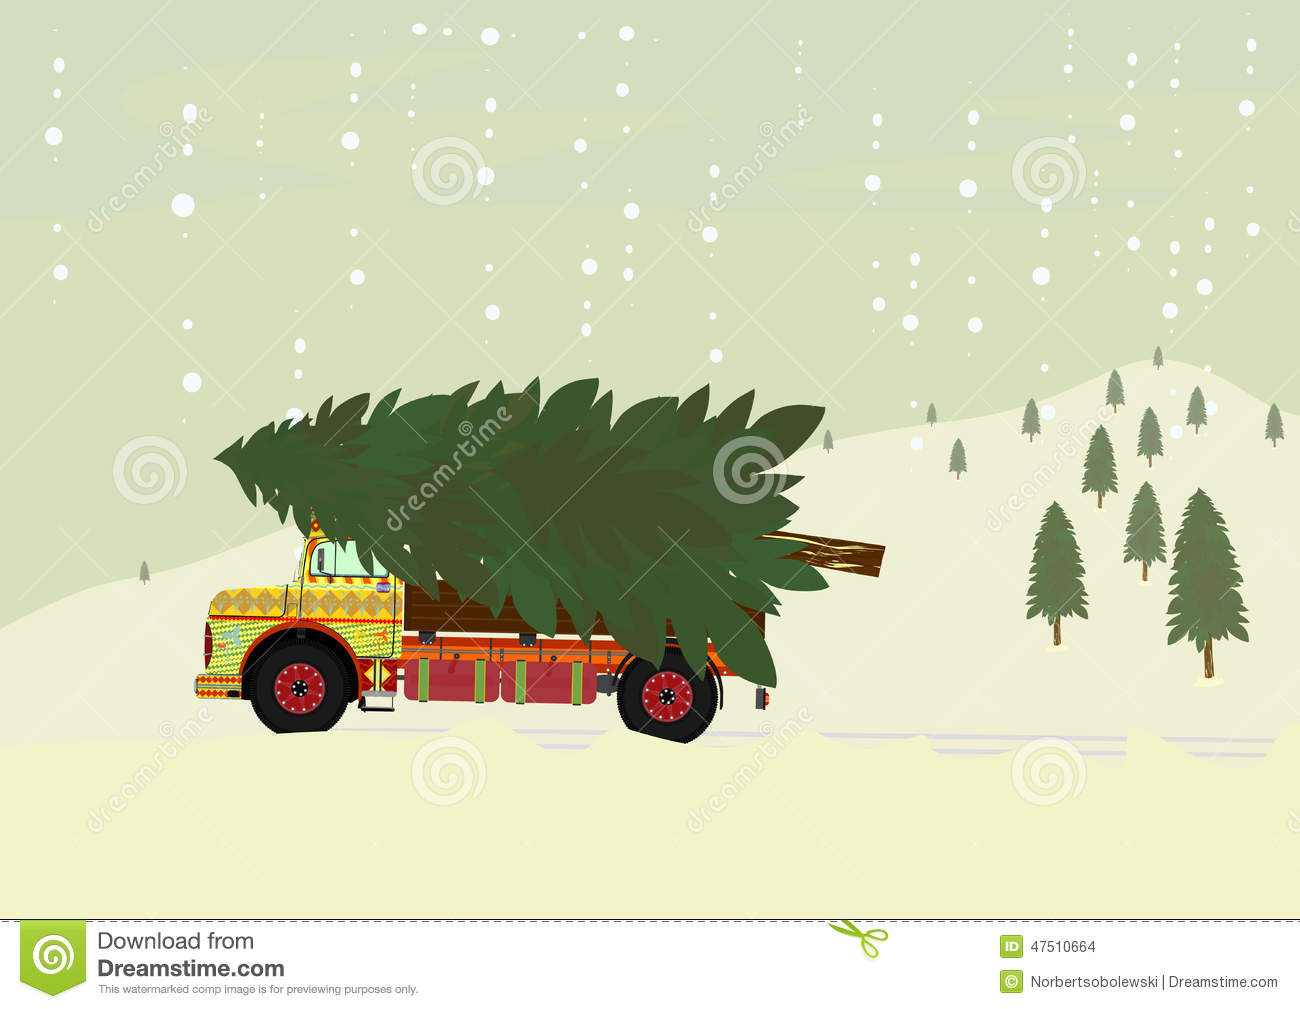 Truck With Christmas Tree Stock Vector Illustration Of Santa 47510664 The best gifs are on giphy. truck with christmas tree stock vector illustration of santa 47510664